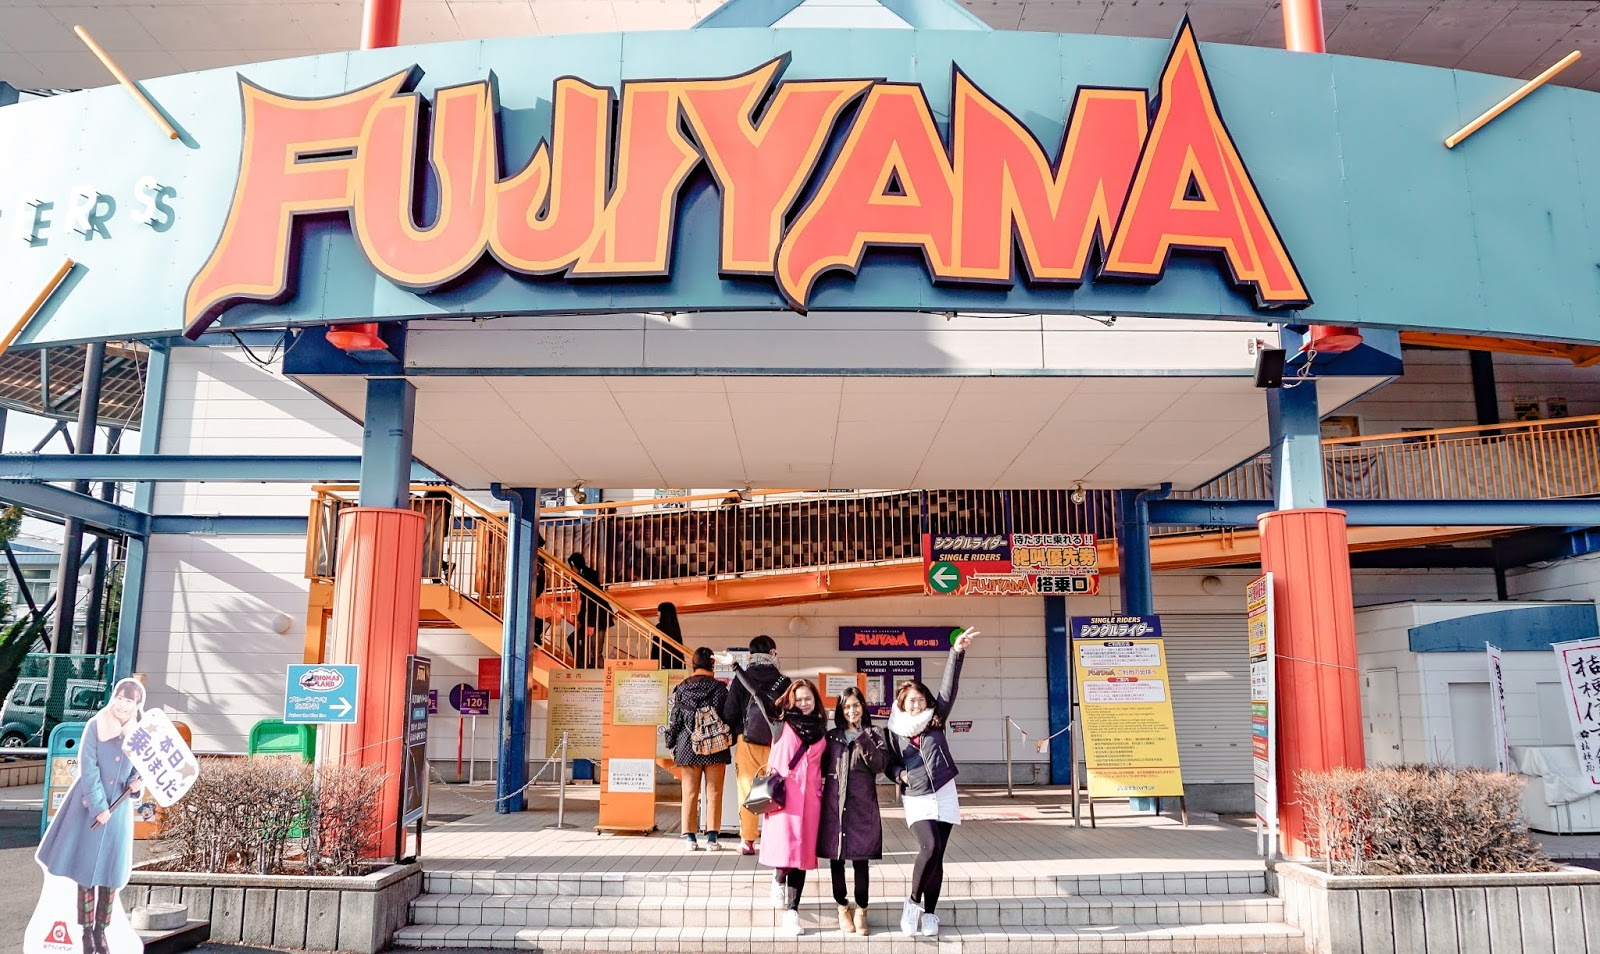 FUJI-Q Highland: Conquered the tallest and fastest roller coaster in the world.